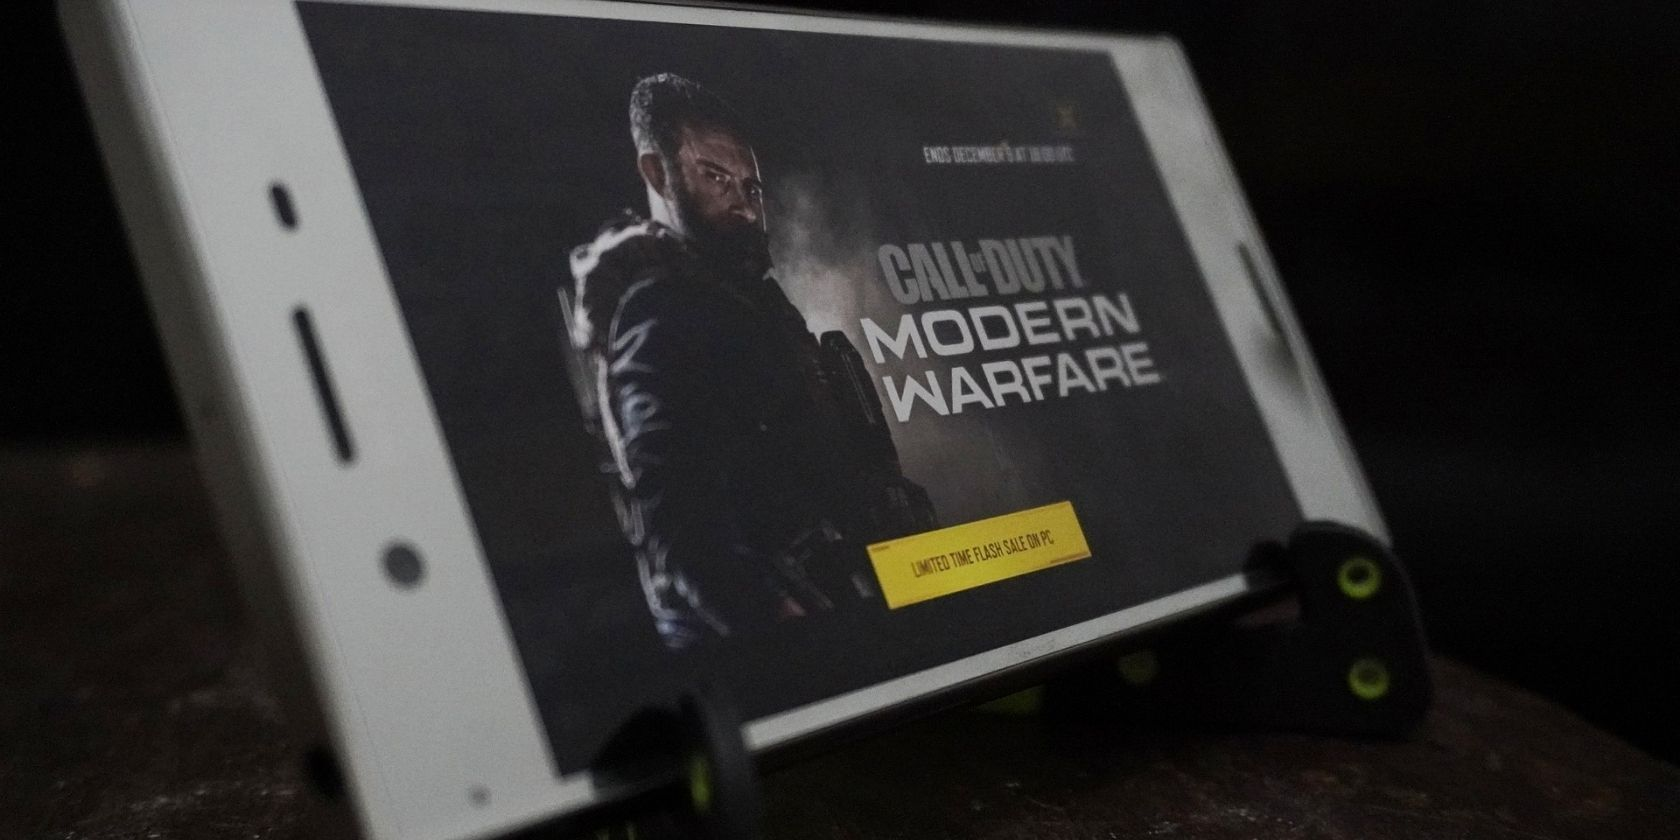 How to Change Your Activision ID